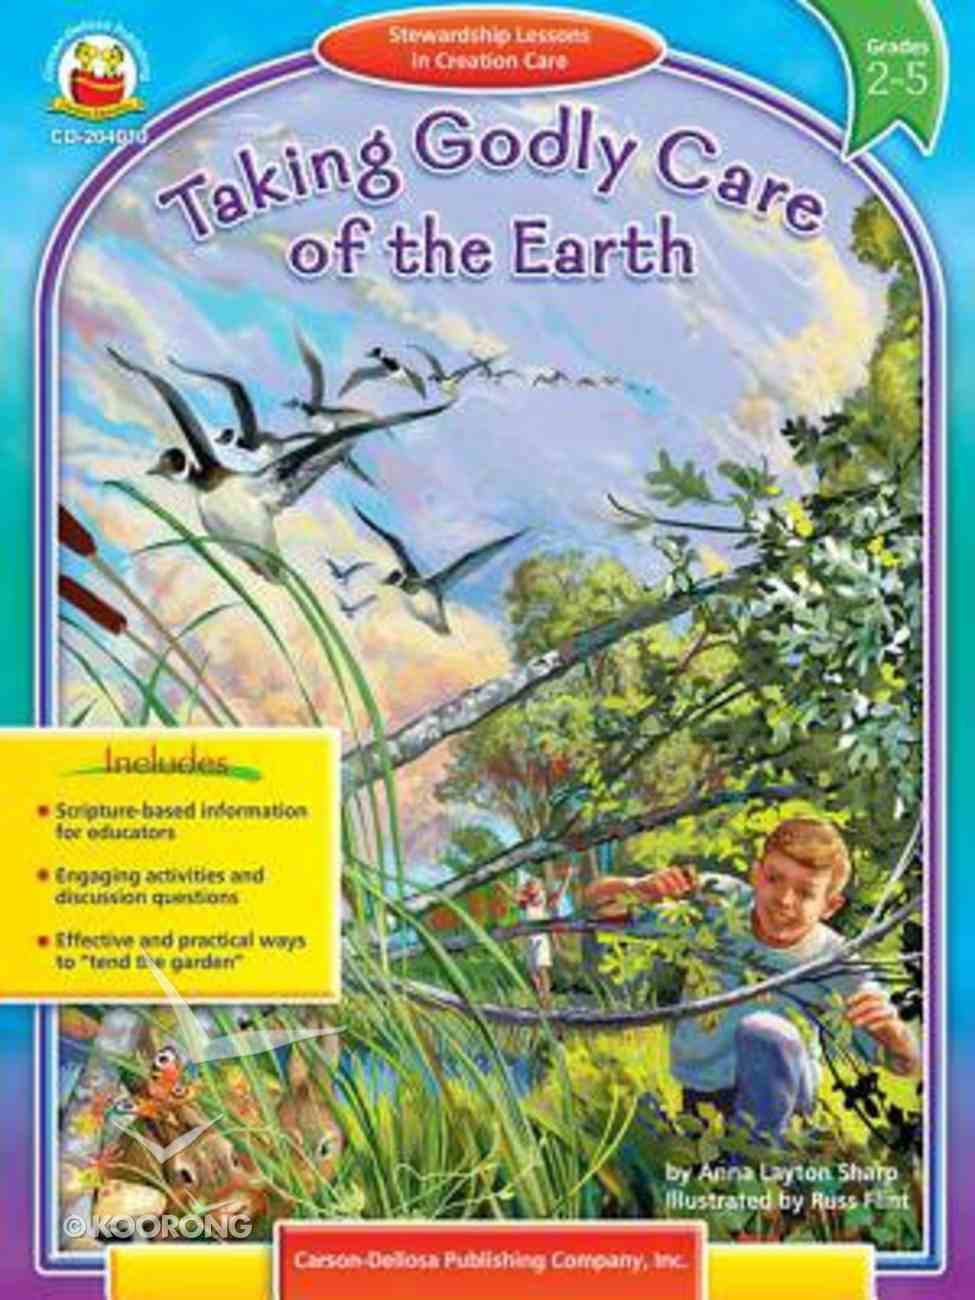 Taking Godly Care of the Earth (Grades 2-5) Paperback